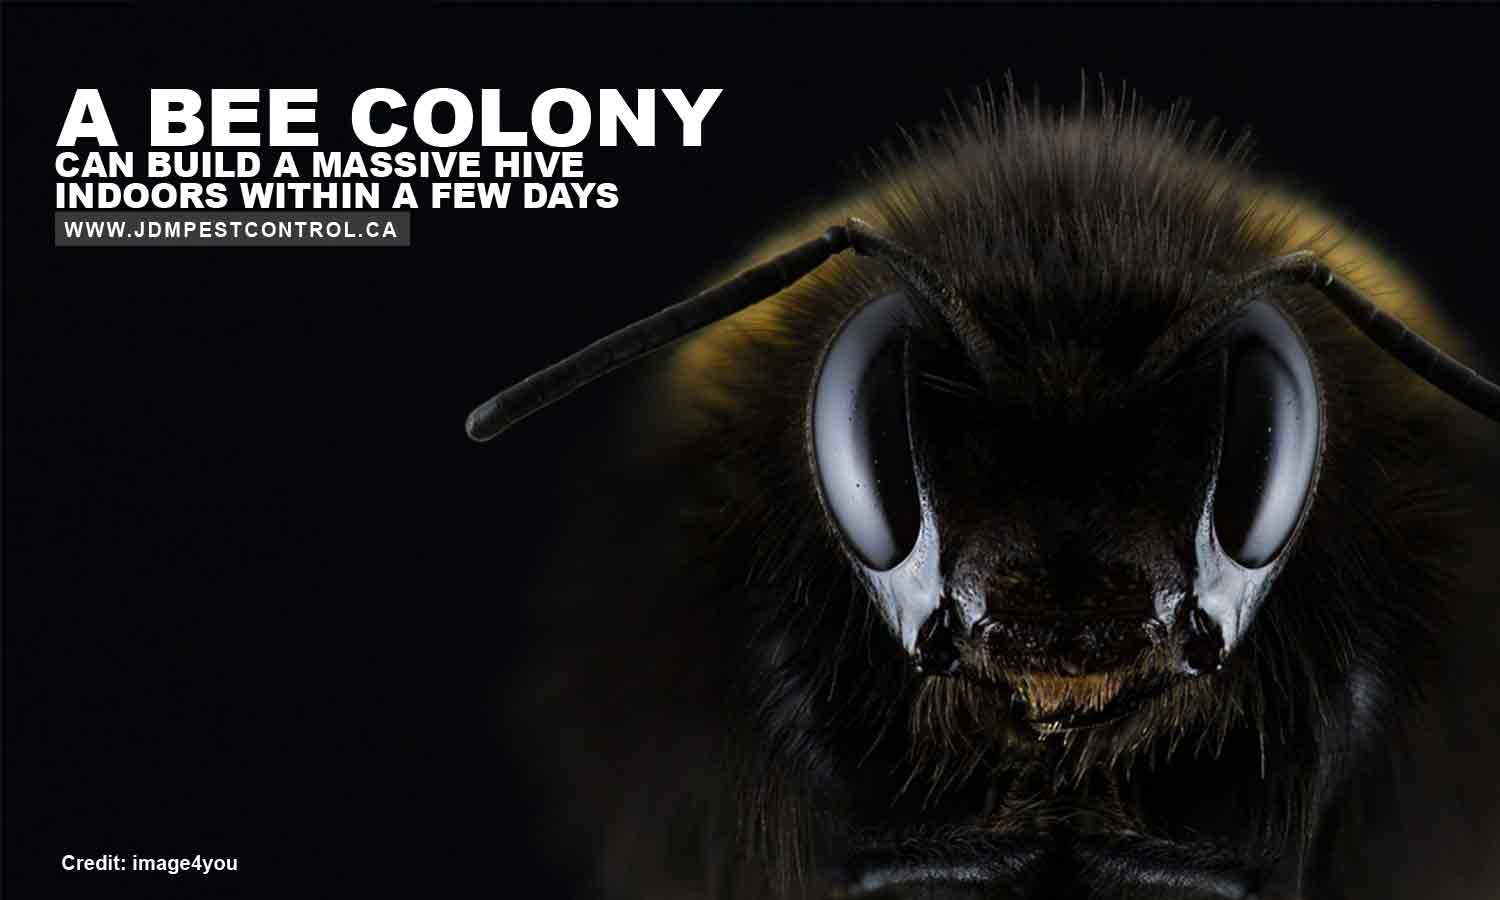 A bee colony can build a massive hive indoors within a few days